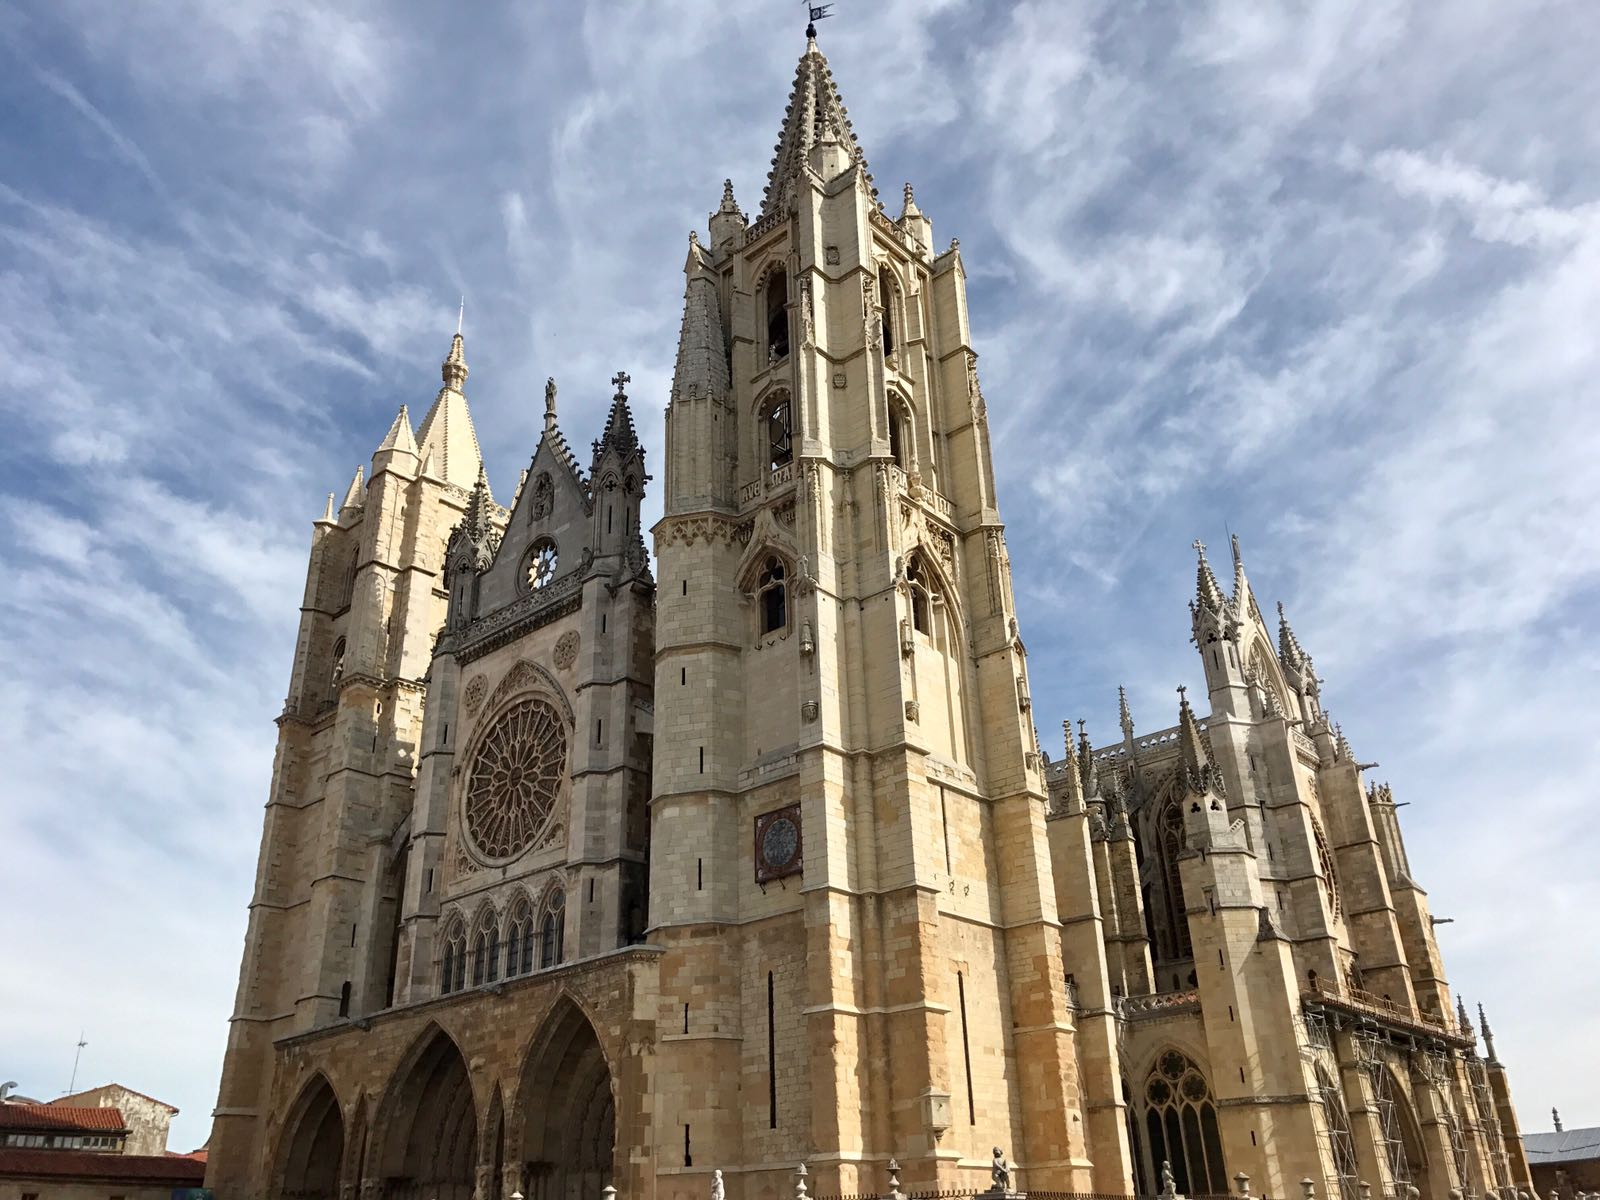 Leon Cathedral from the outside